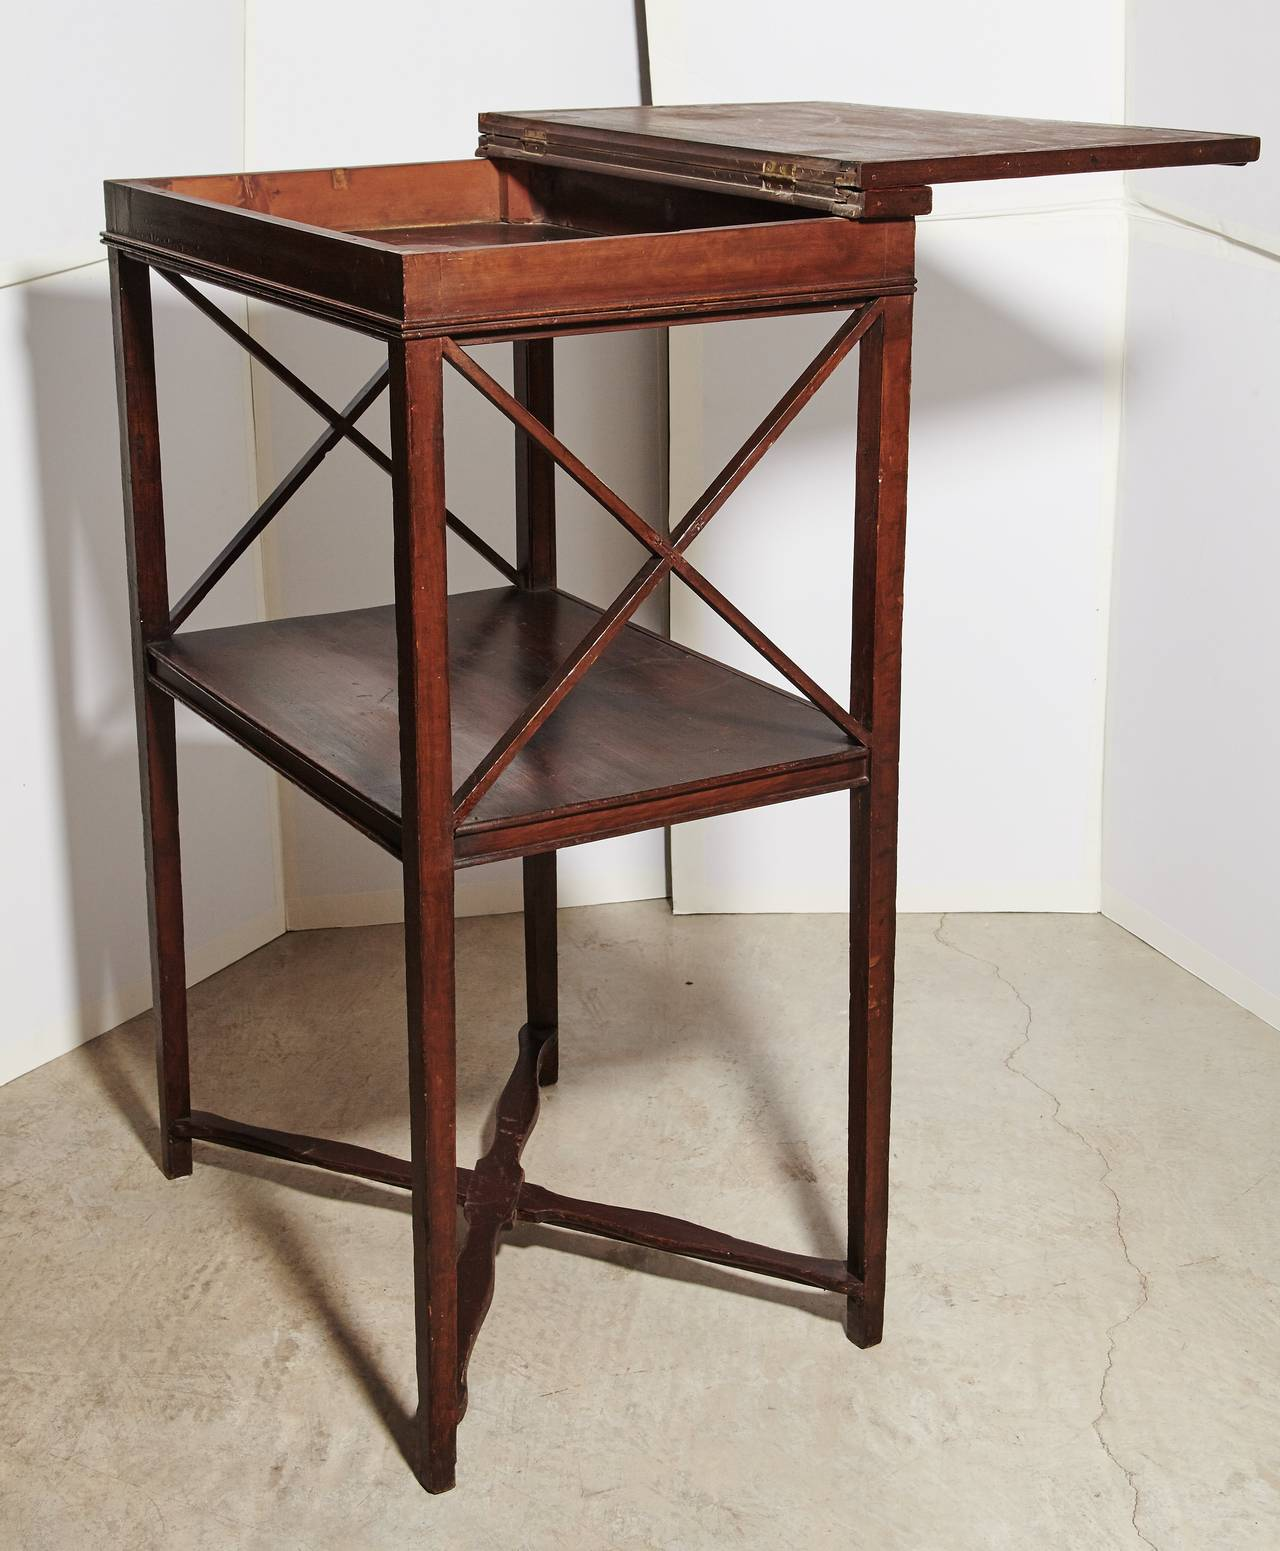 Antique American Standing Desk In Excellent Condition For Dallas Tx